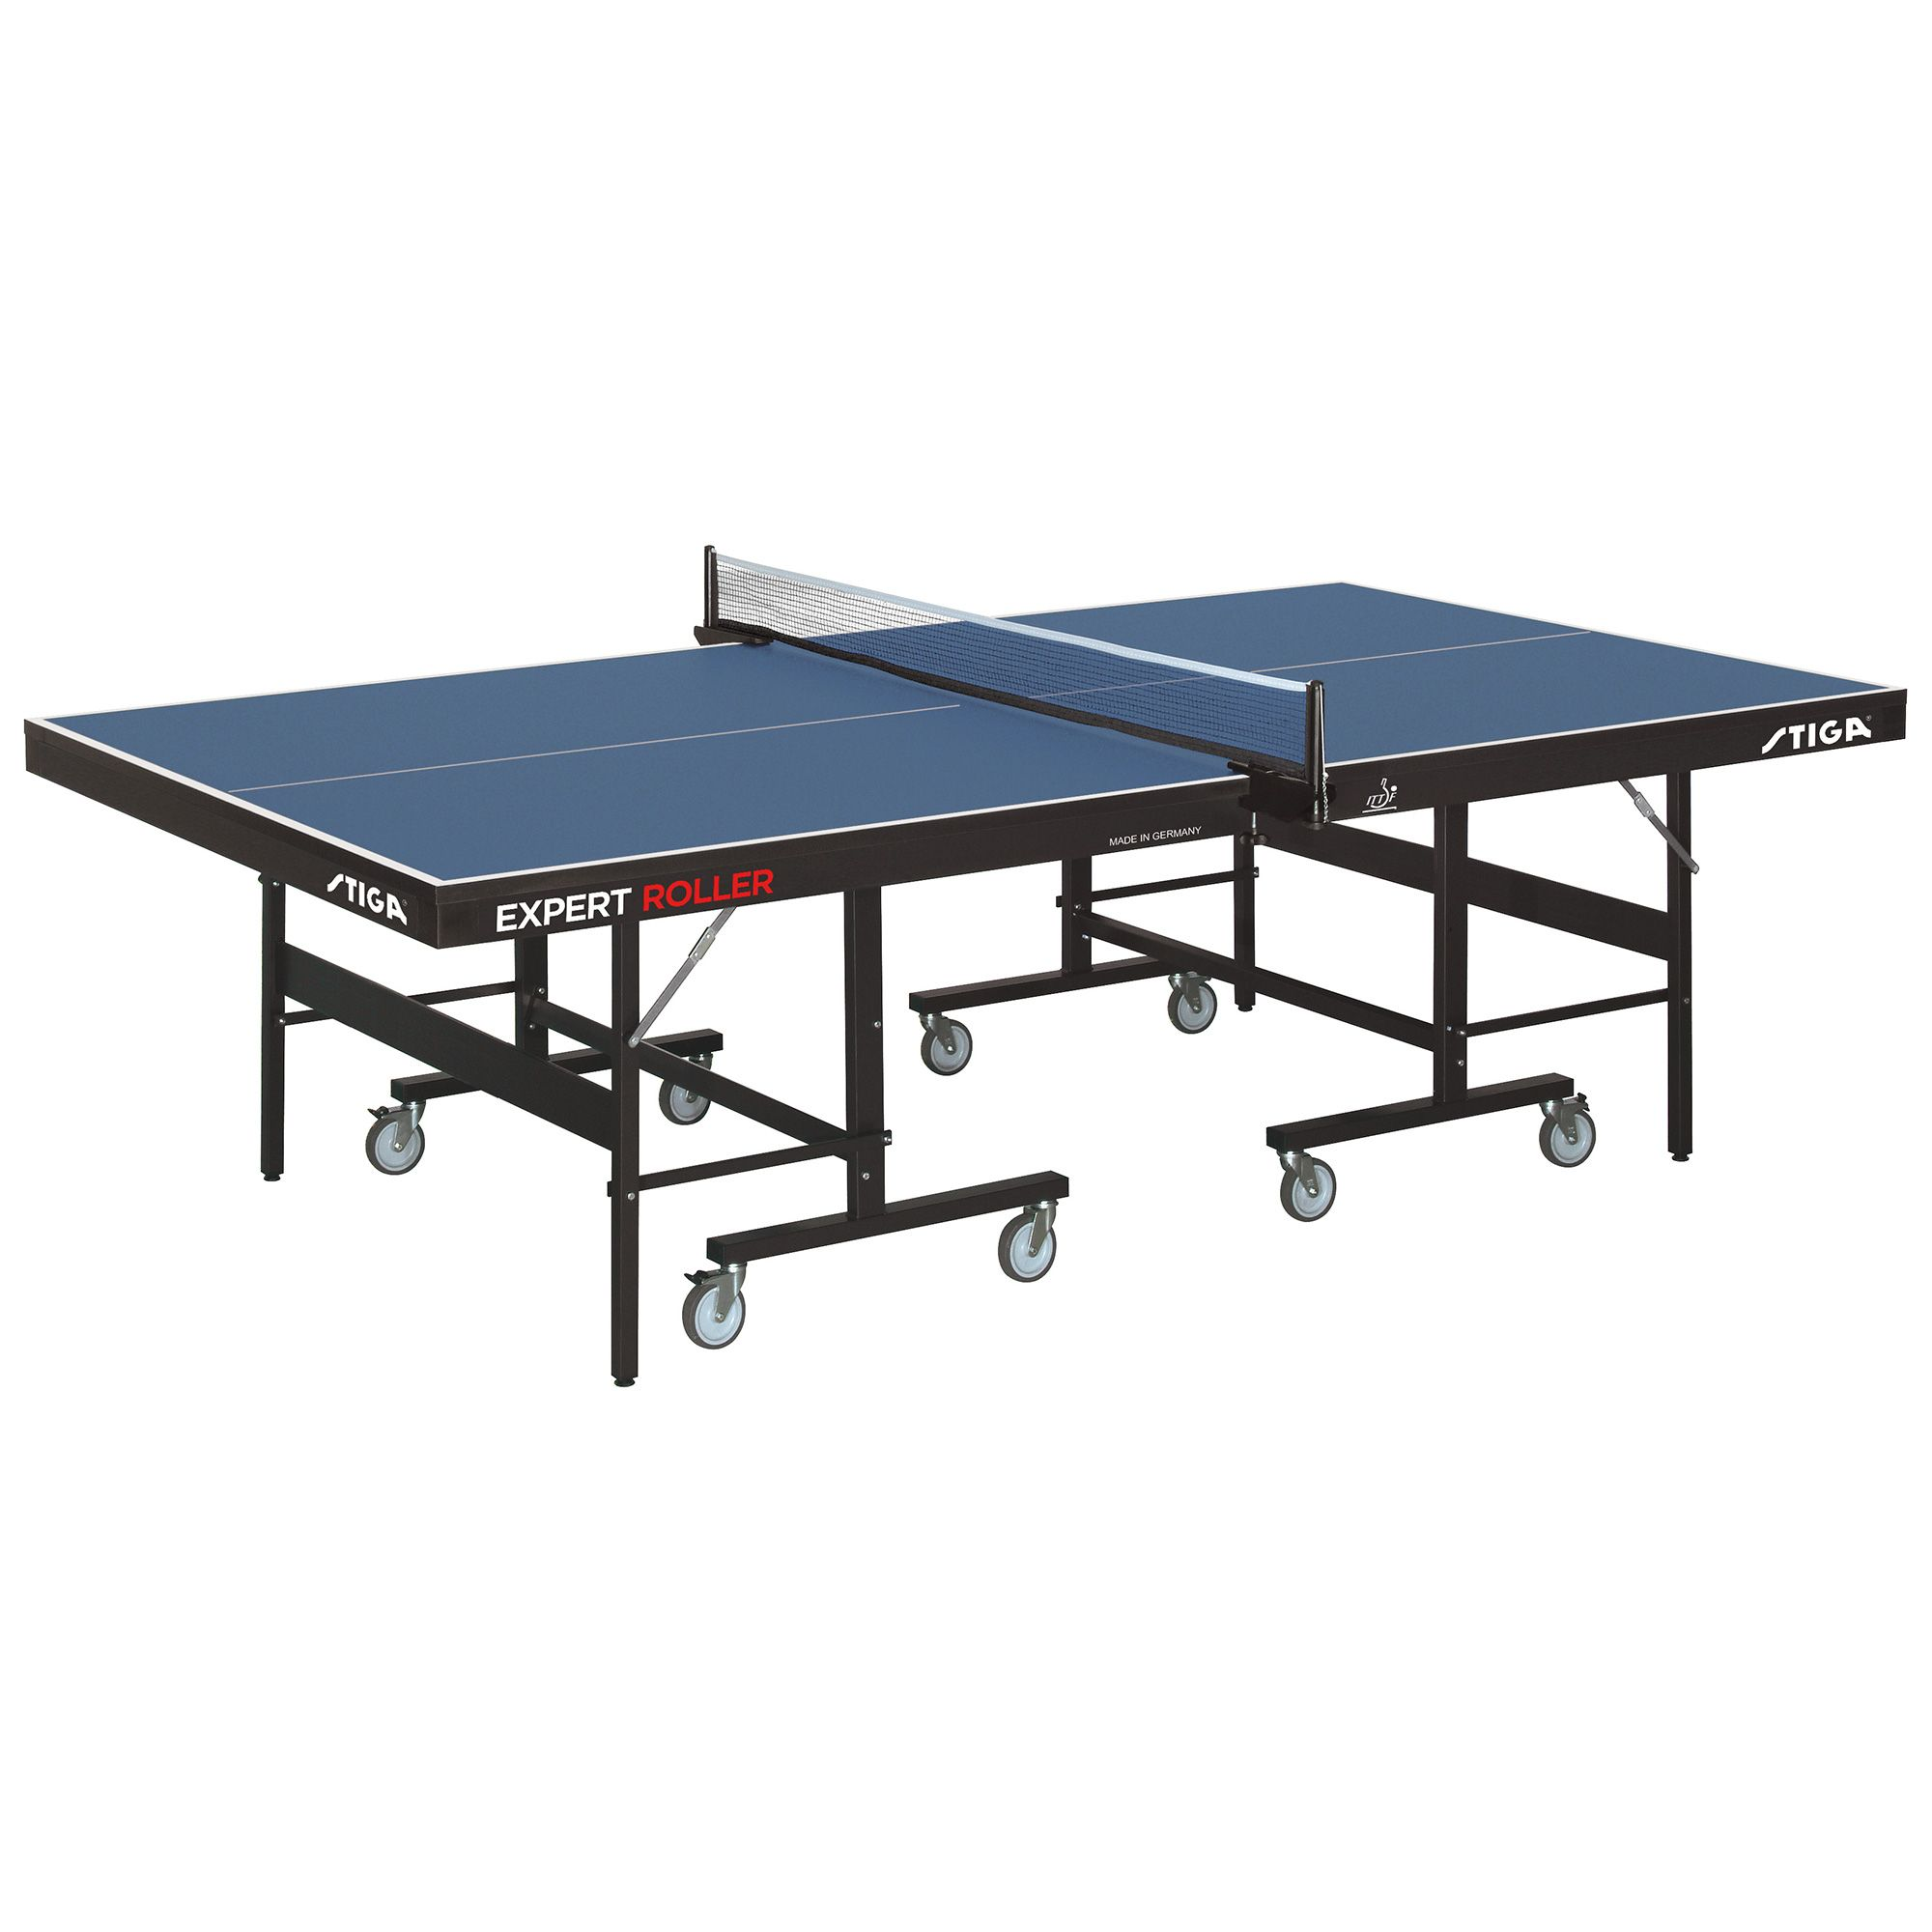 Stiga expert roller ccs ittf indoor table tennis table - Stiga outdoor table tennis table ...